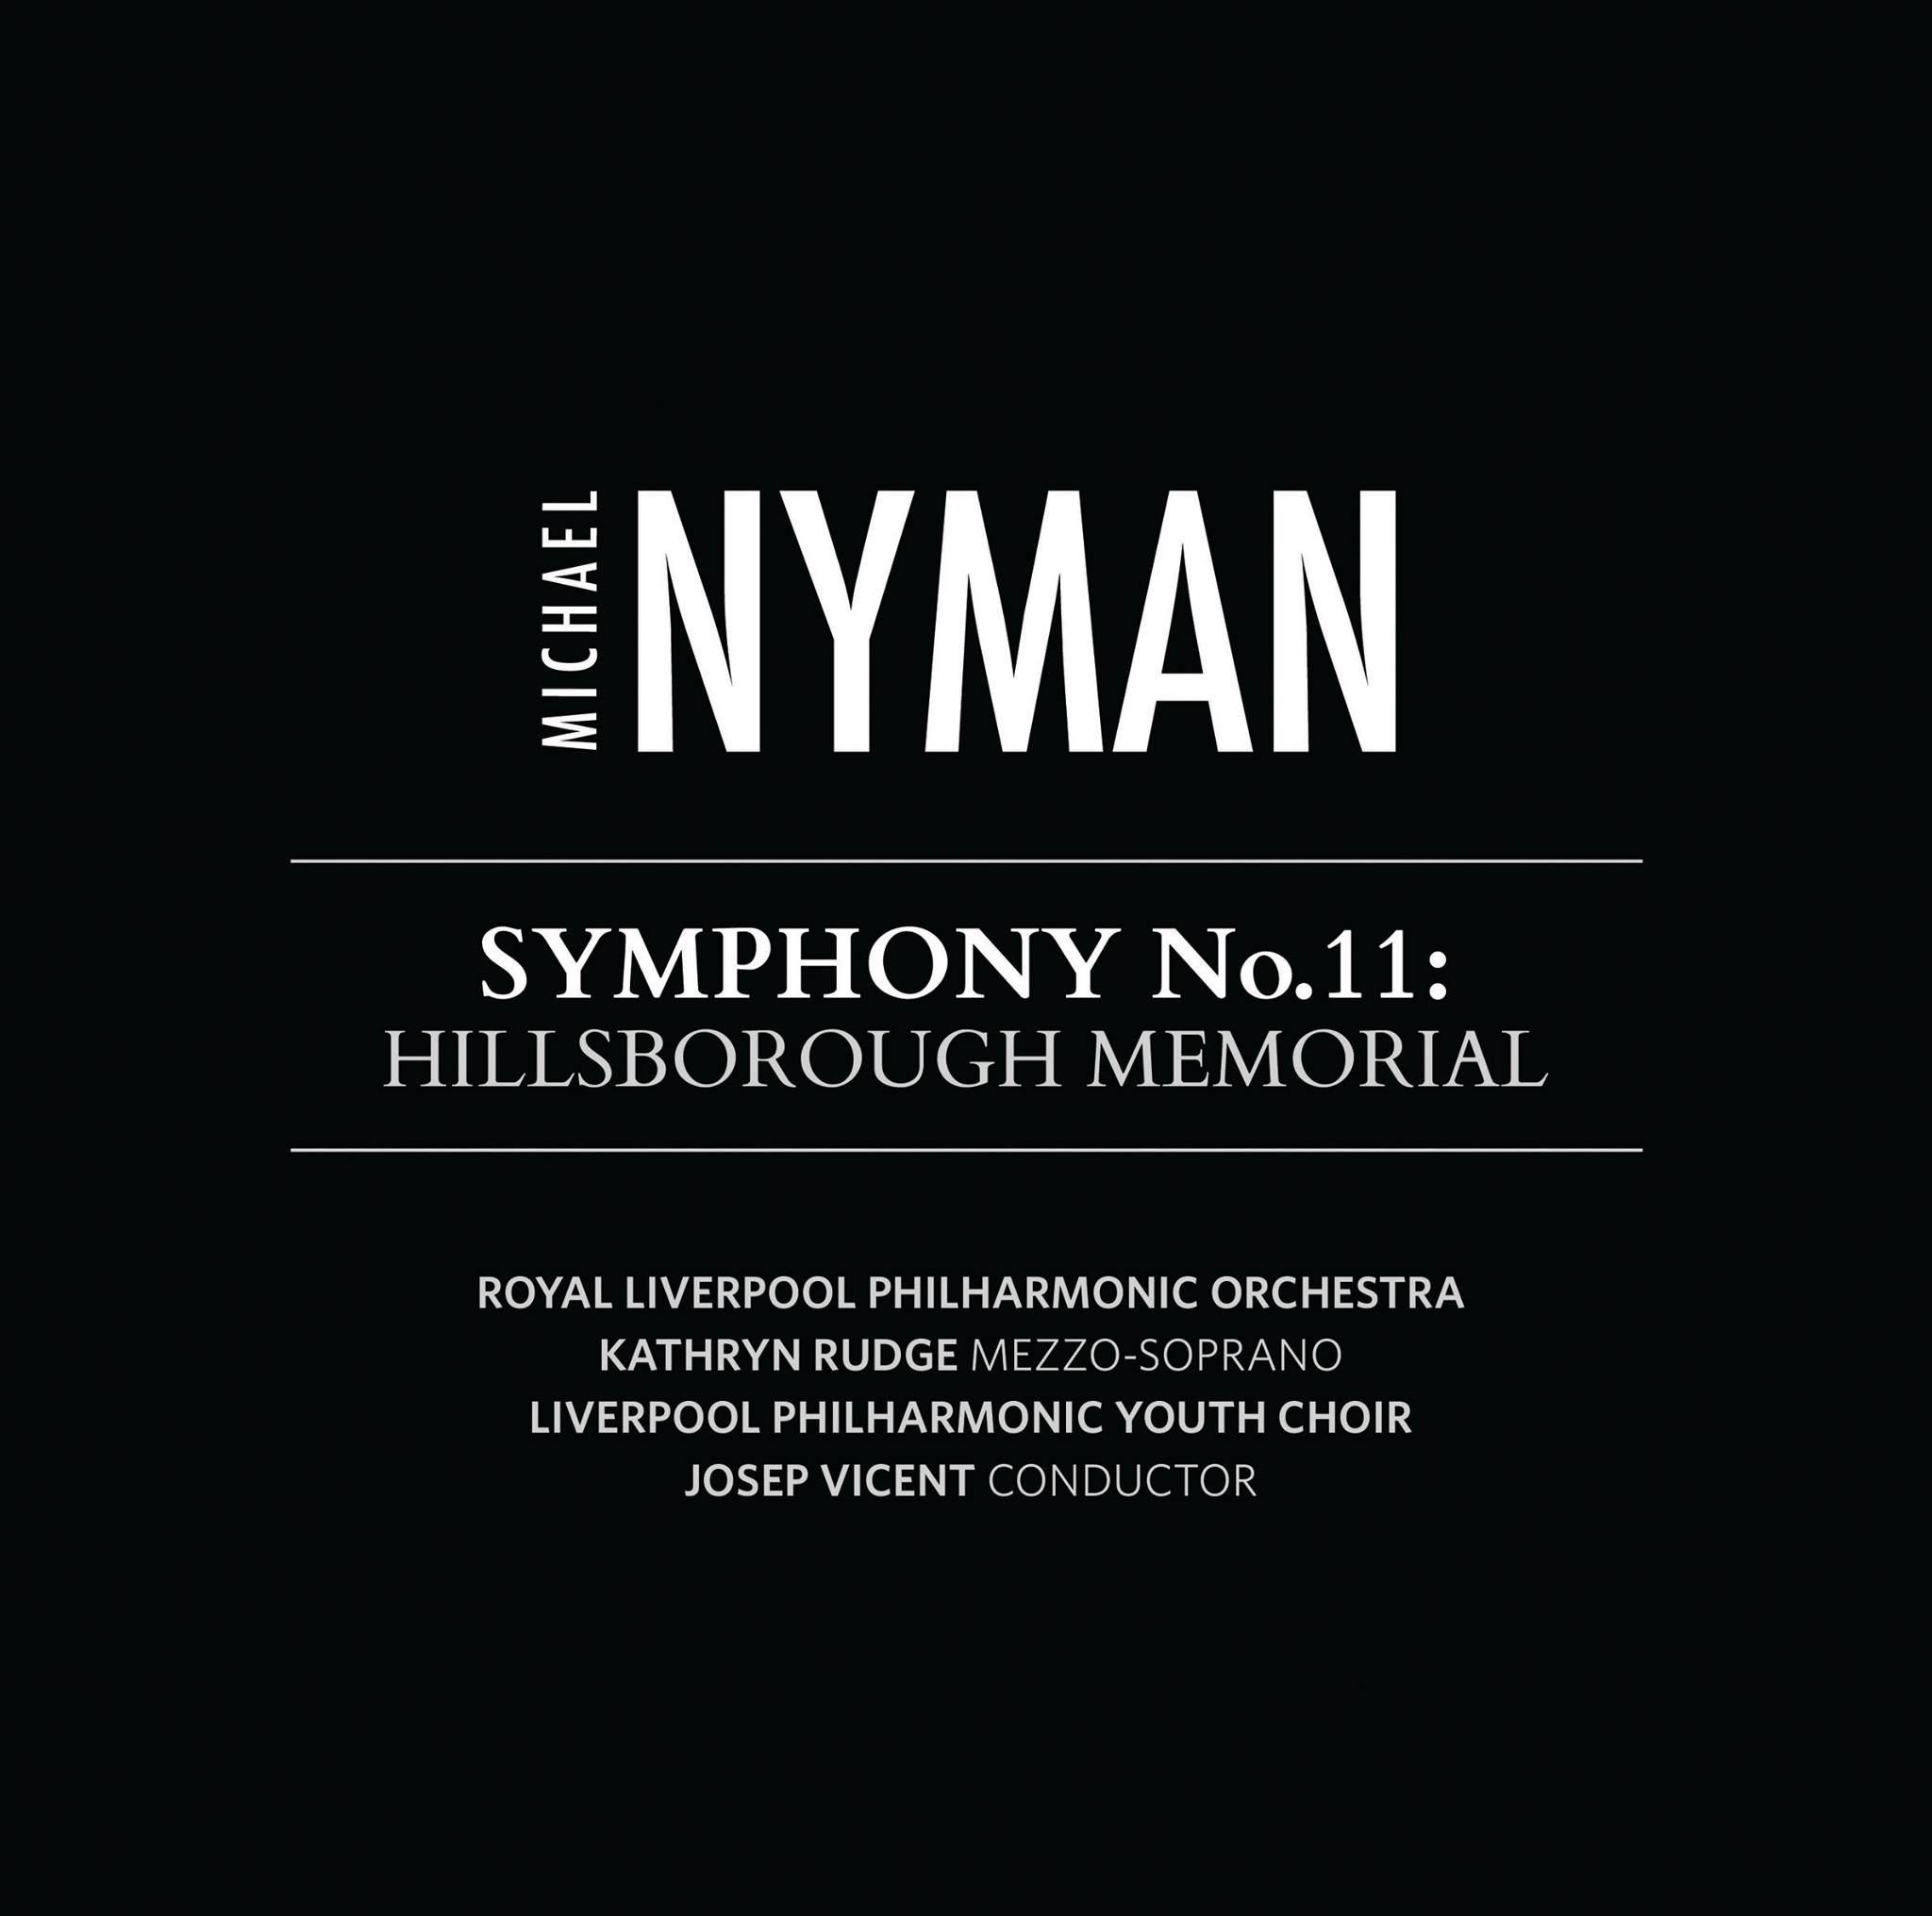 Symphony No.11: Hillsborough Memorial Nyman CD Release